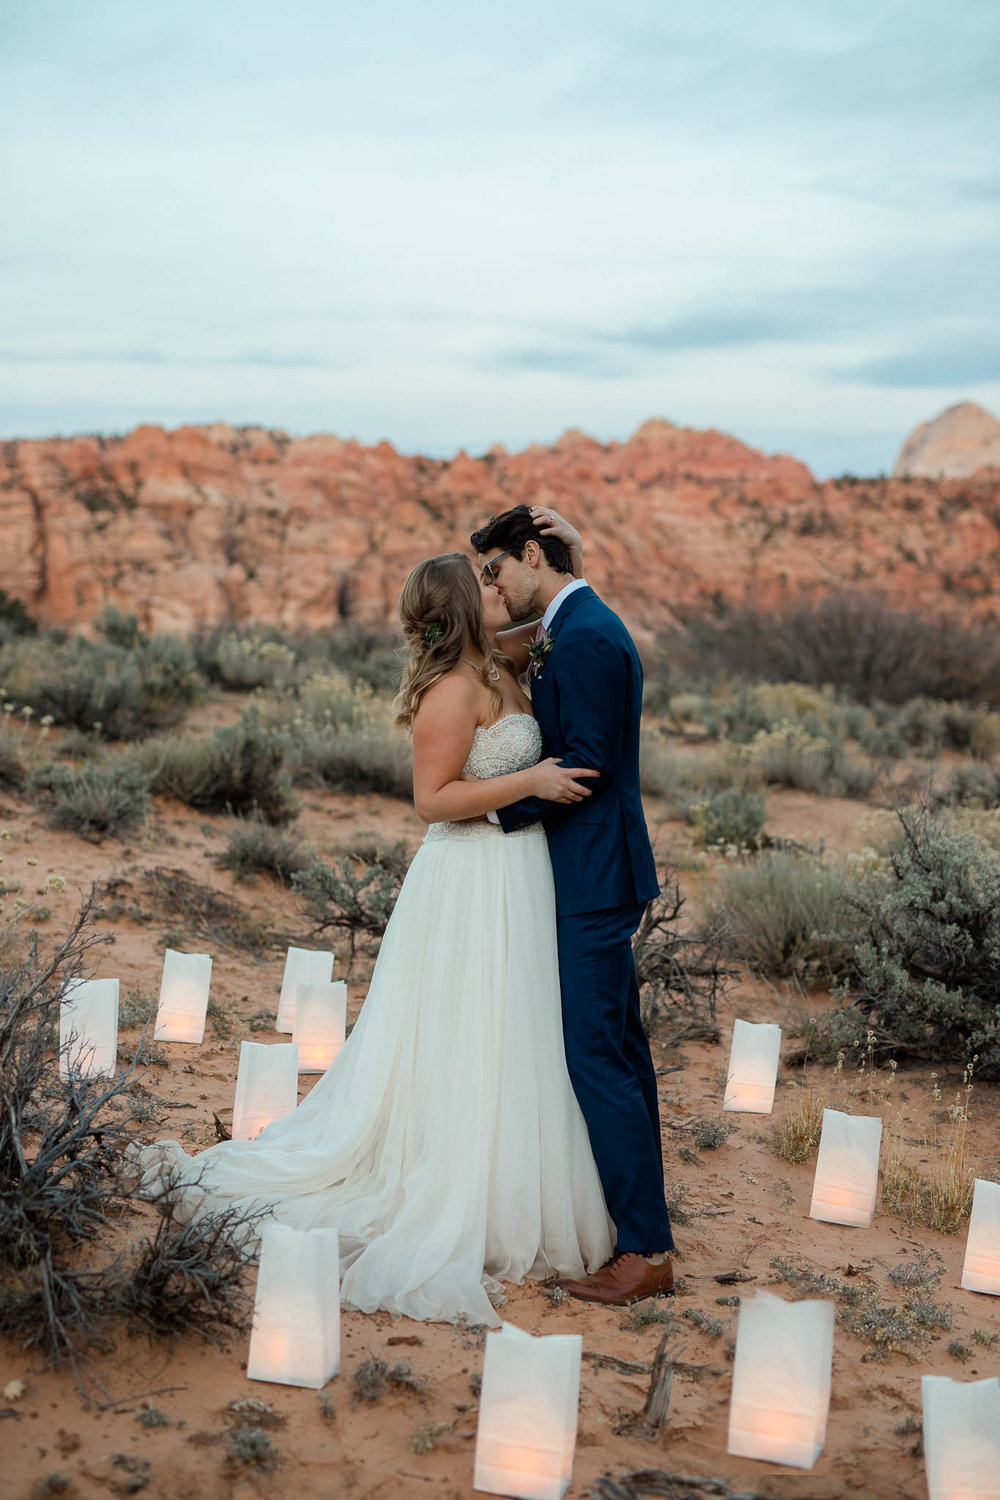 Bride and groom kiss surrounded by lanterns during their intimate adventure wedding in Zion National Park Utah